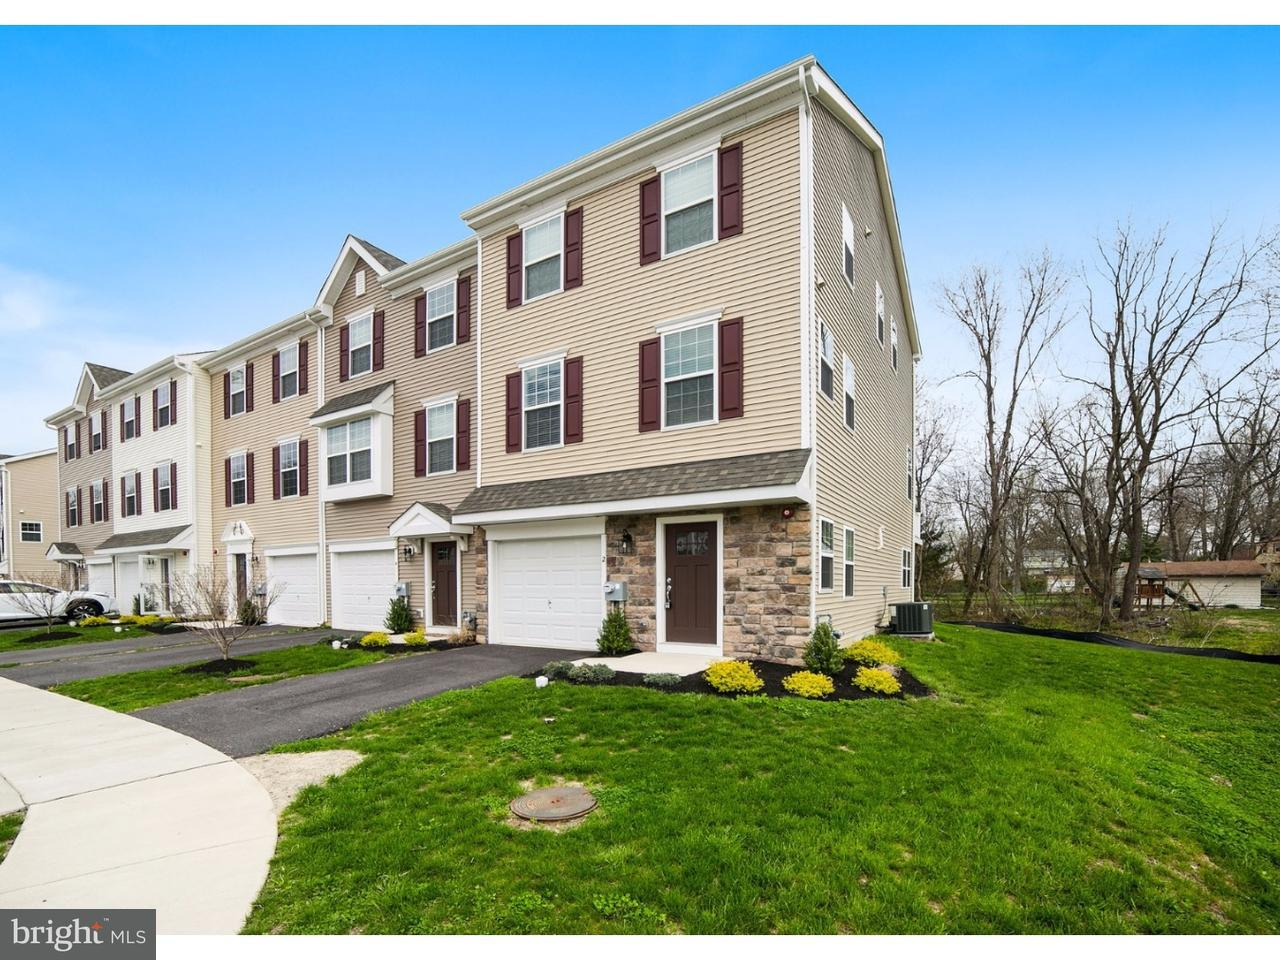 Townhouse for Sale at 2 FARADAY Court Morton, Pennsylvania 19070 United States